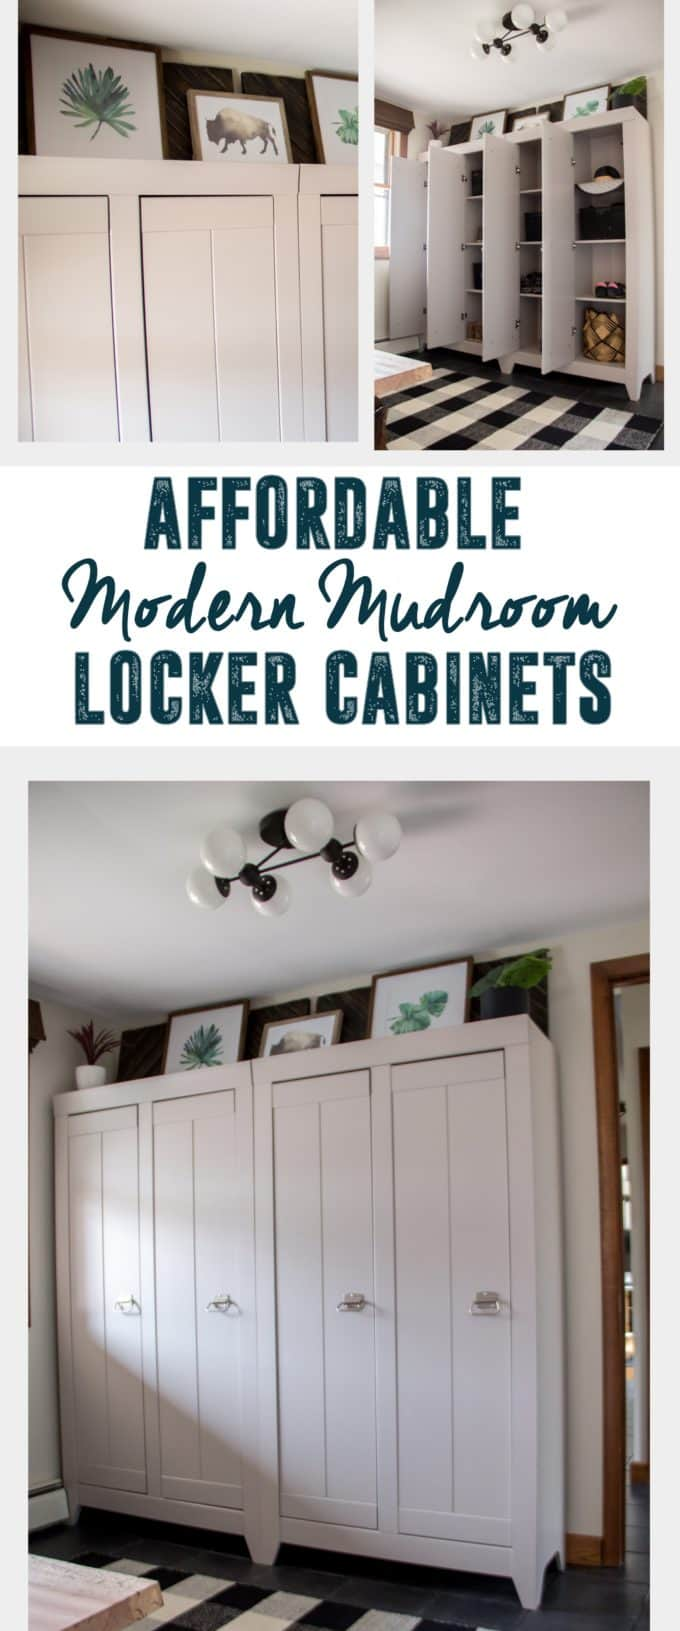 Affordable Mudroom Cabinets